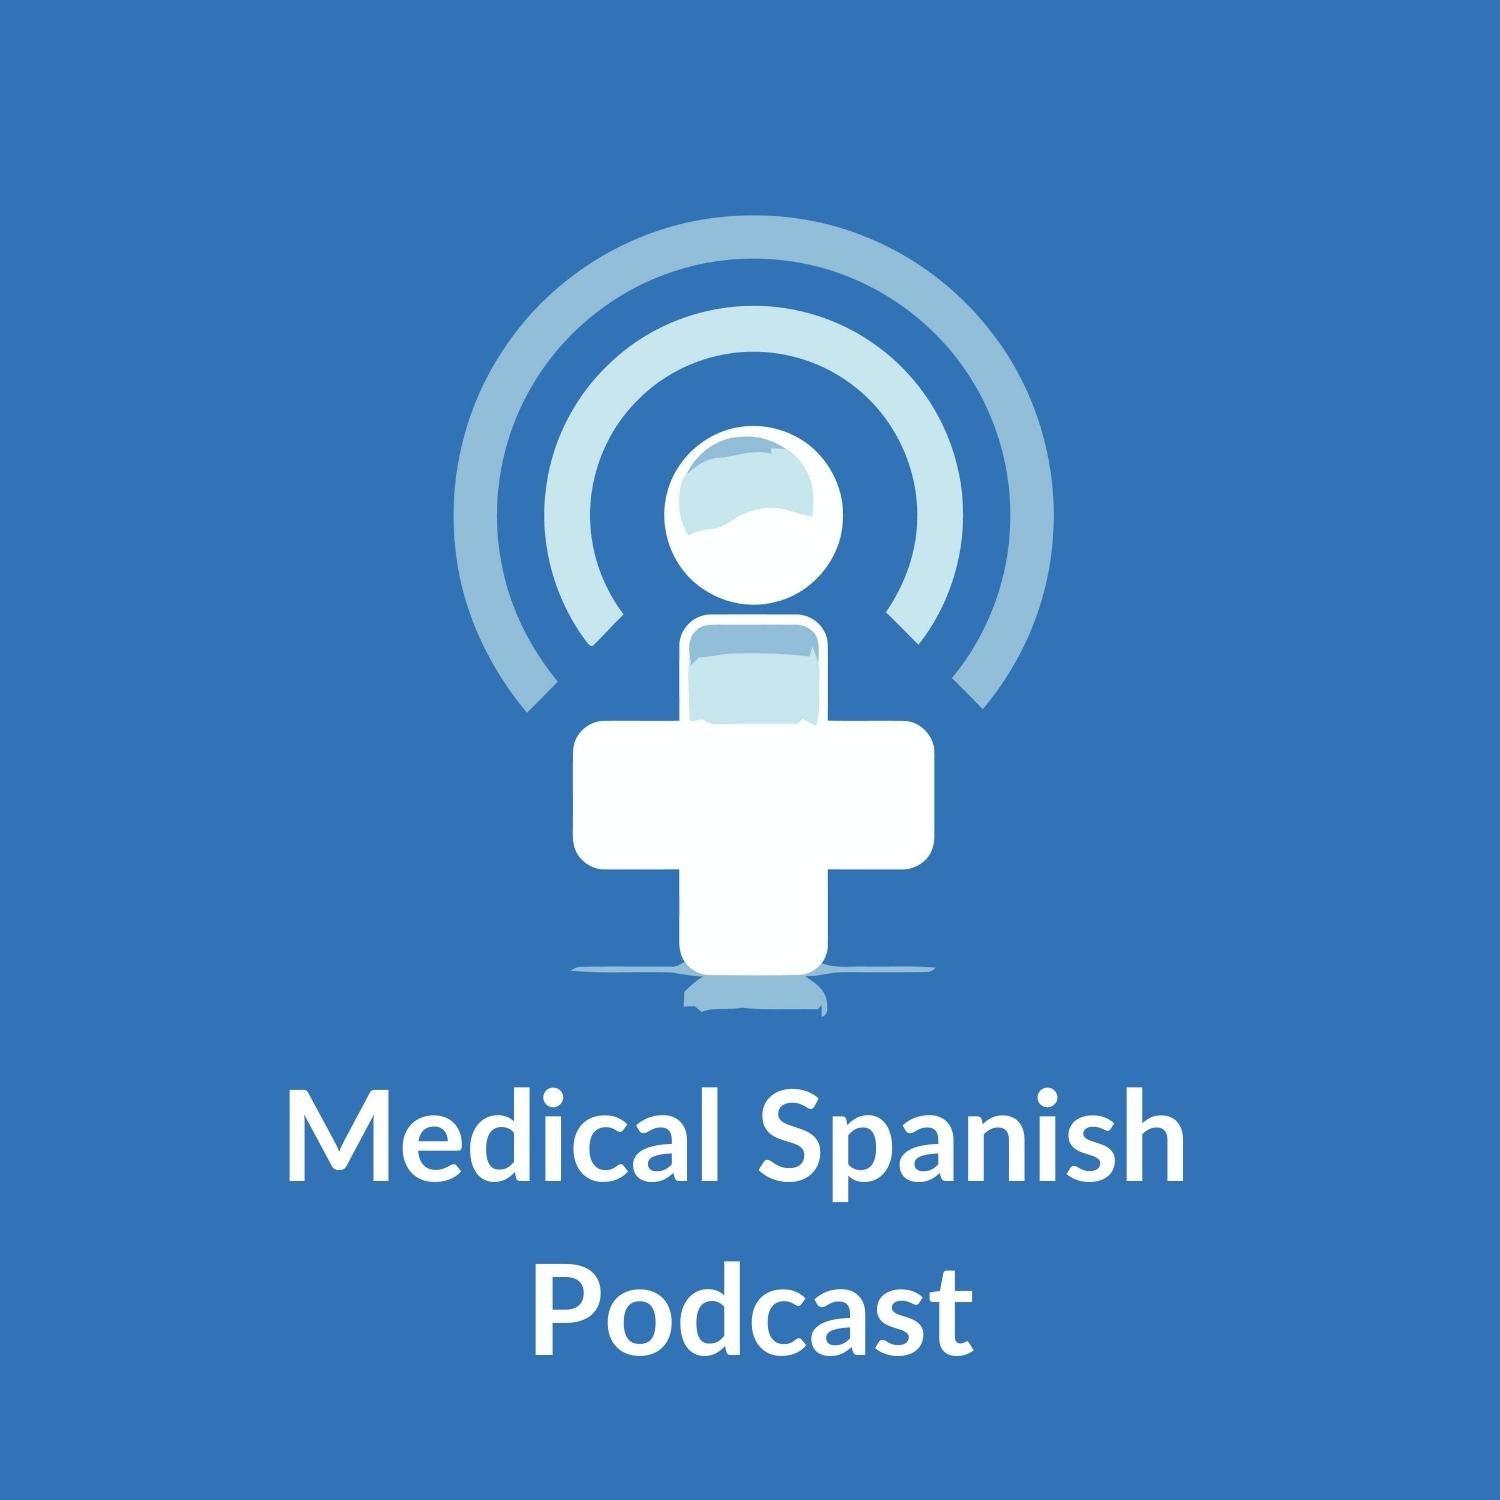 Medical Spanish Podcast